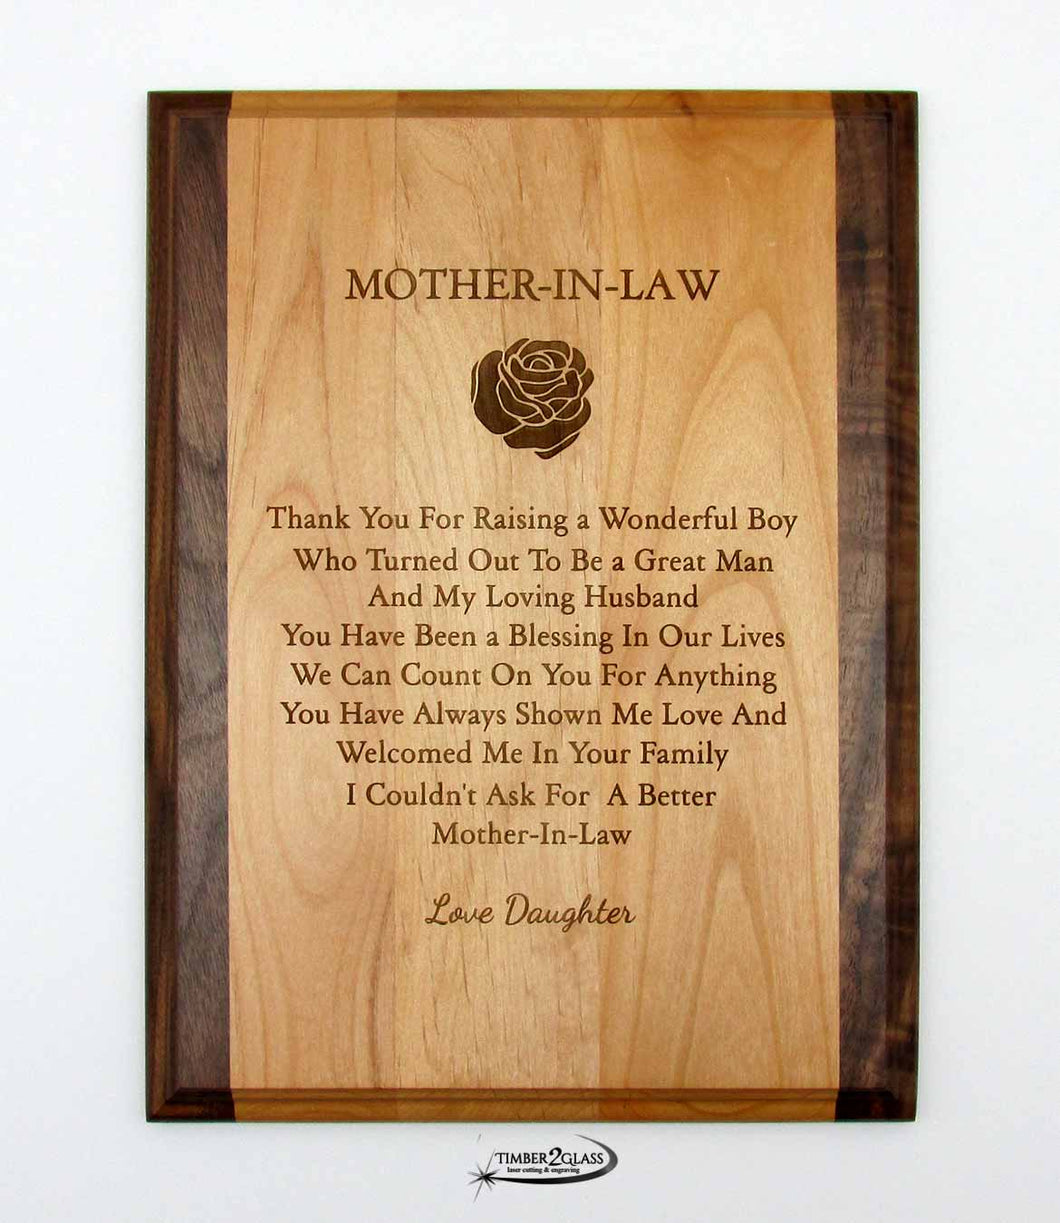 Love Mother-in-Law Plaque